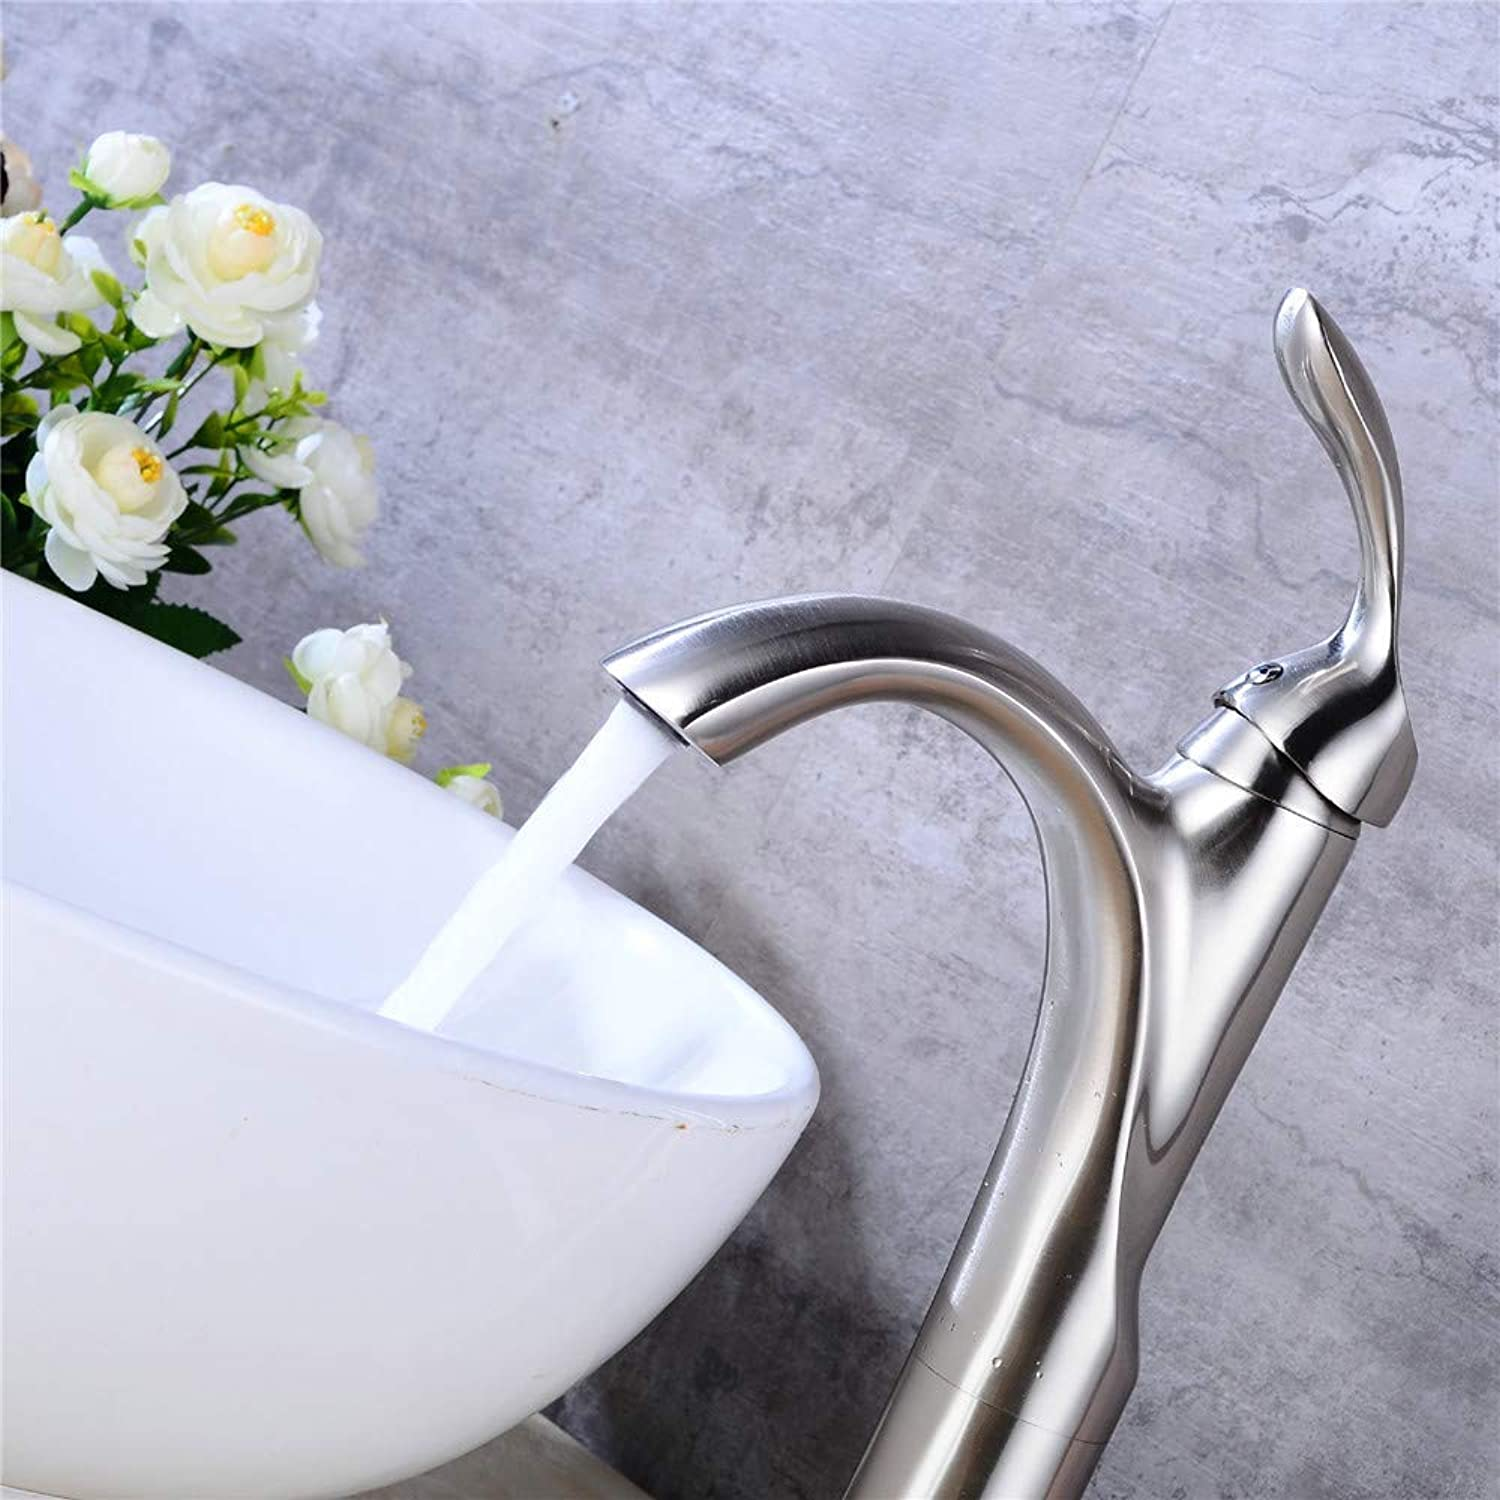 Oudan All Copper Orb Toilet Basin Faucet Hot and Cold Water Faucet Cold Brown Retro Toilet Basin Faucet Stage (color   -, Size   -)